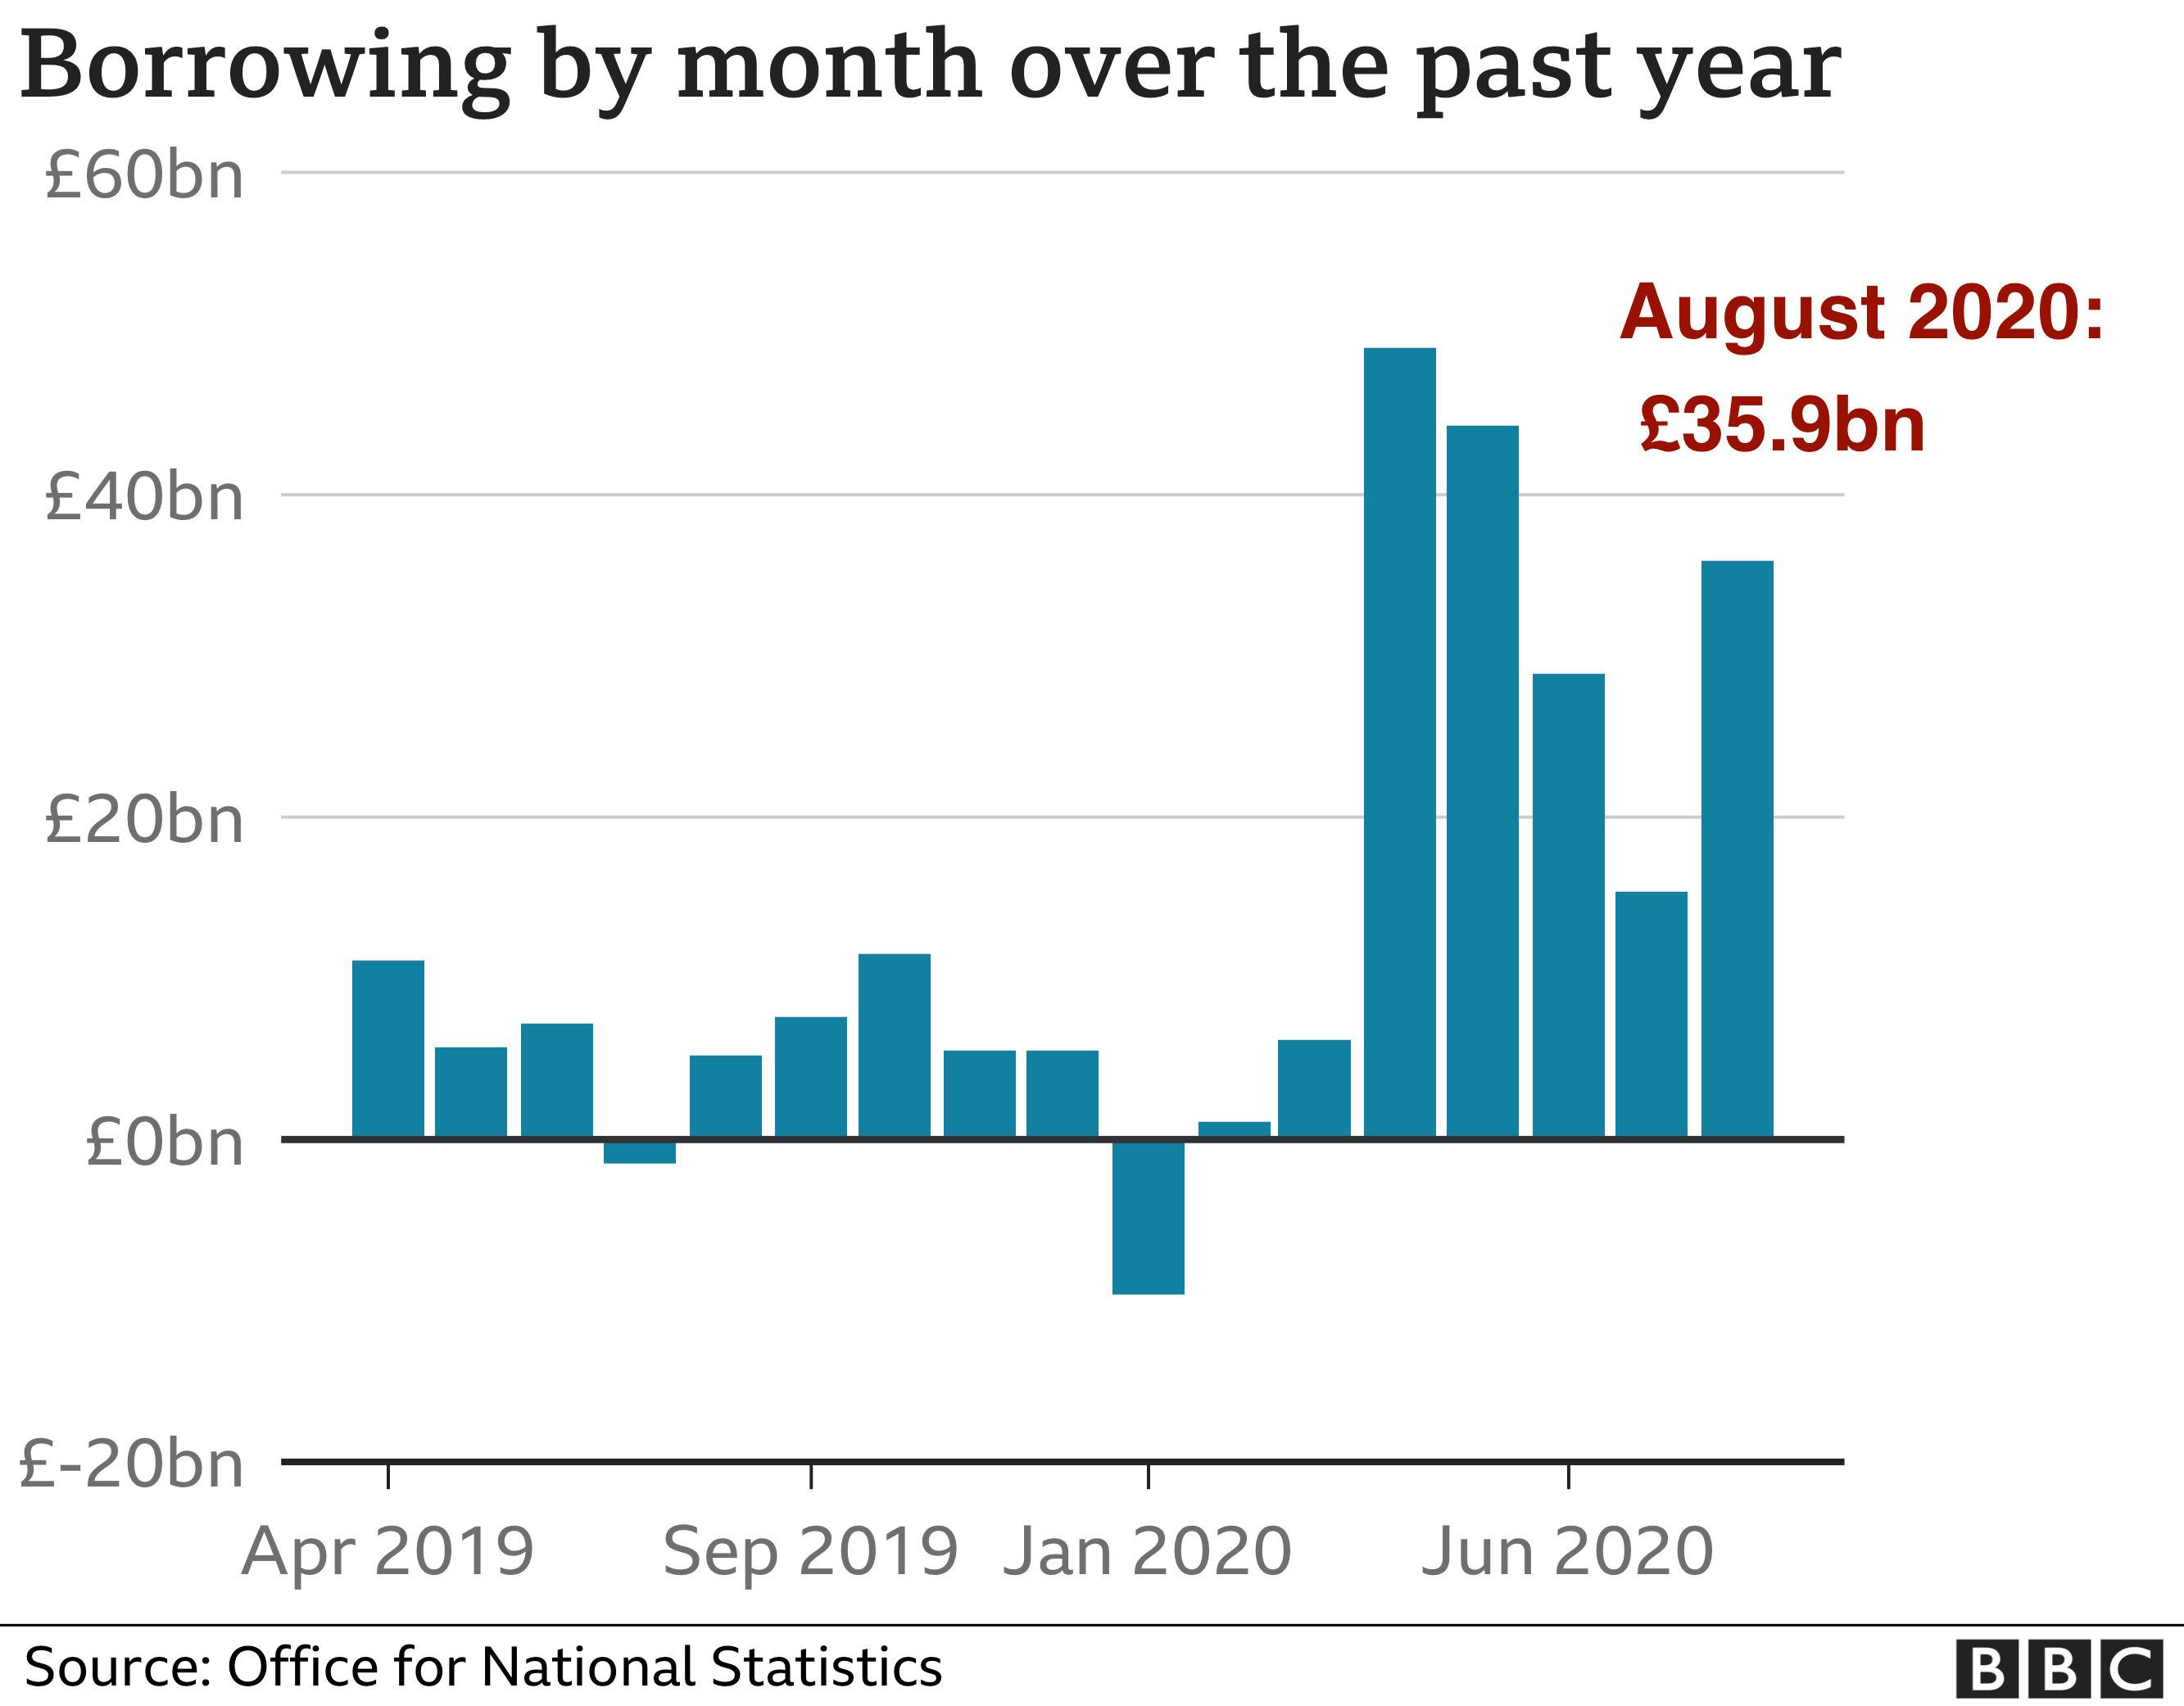 Chart showing monthly government borrowing